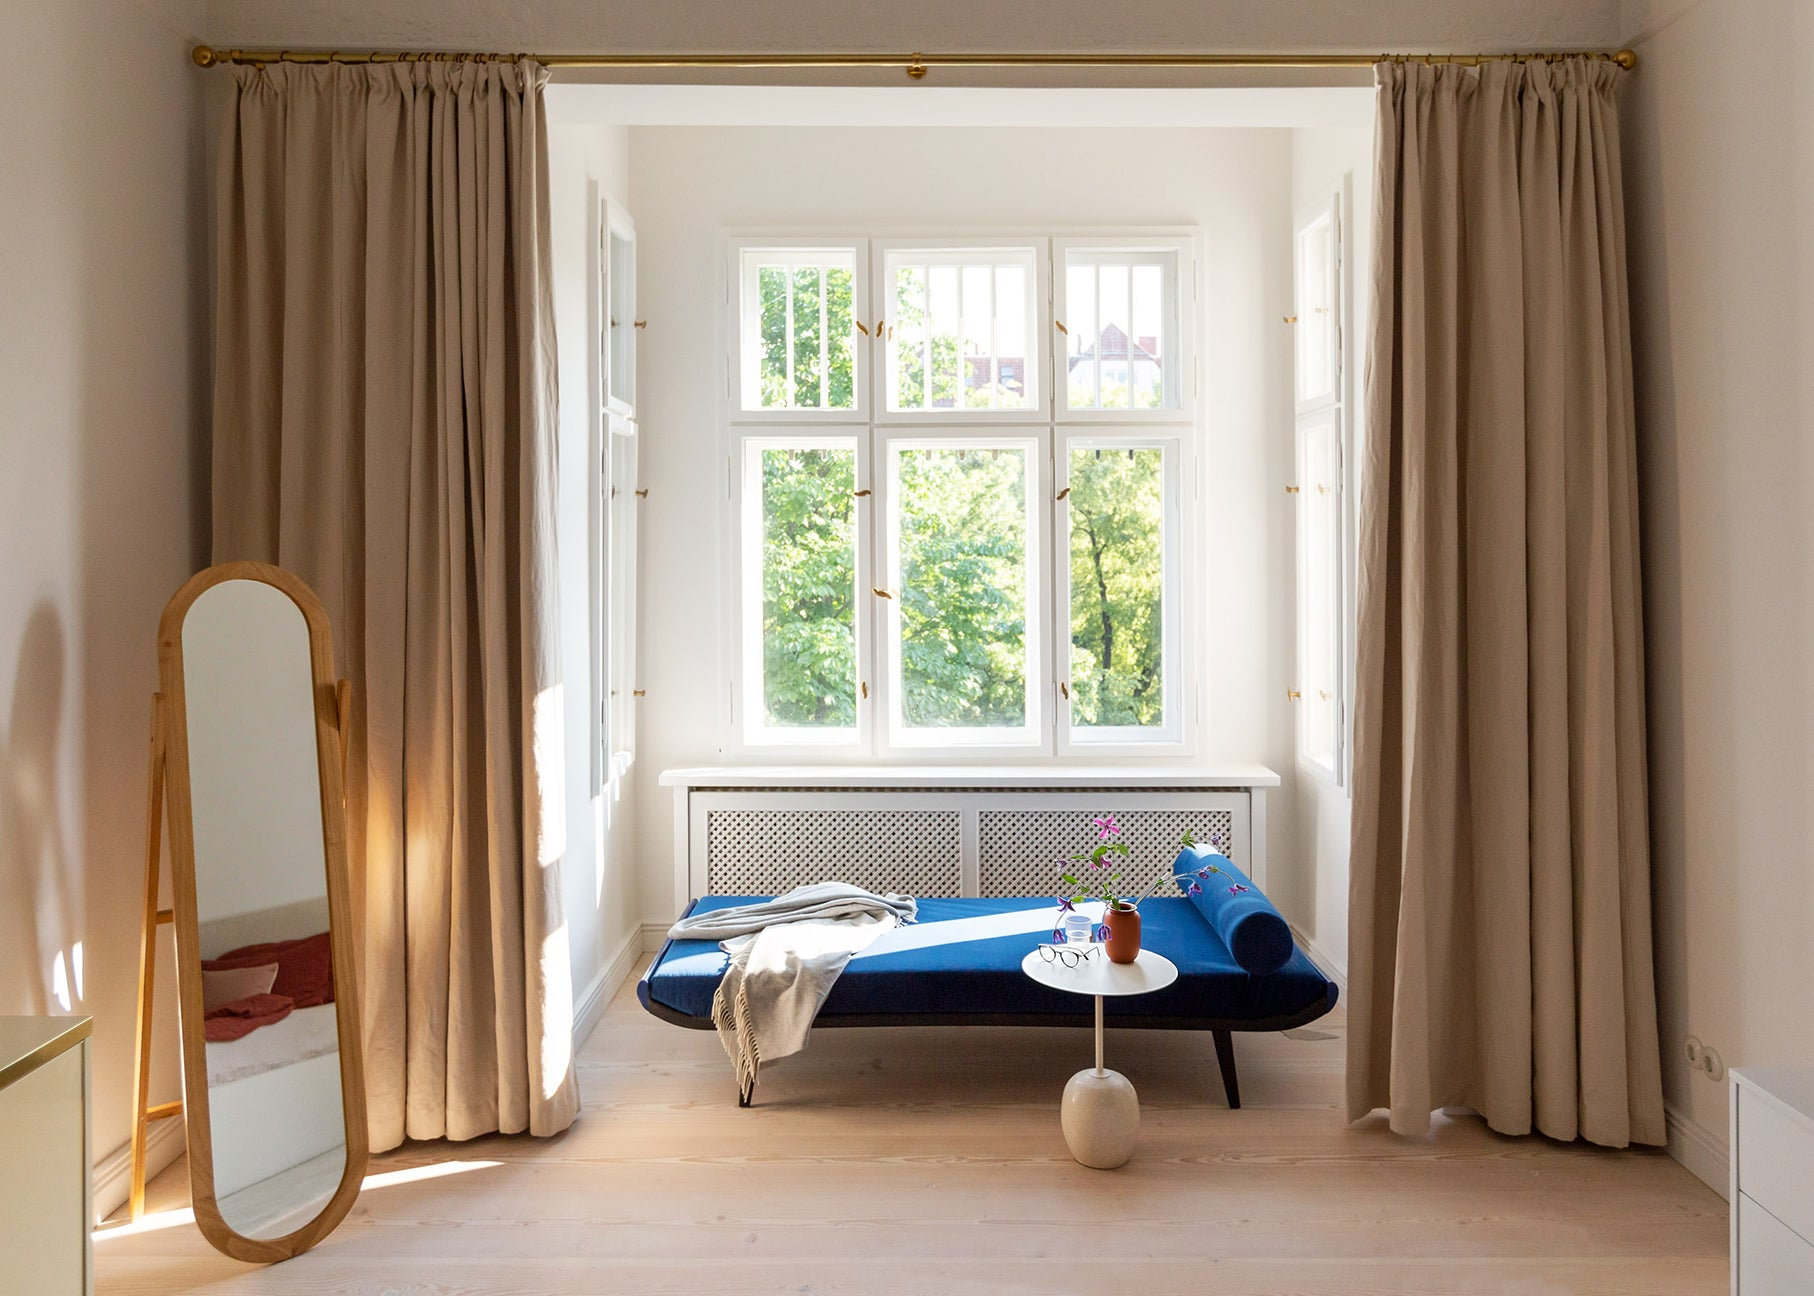 window nook with blue chaise